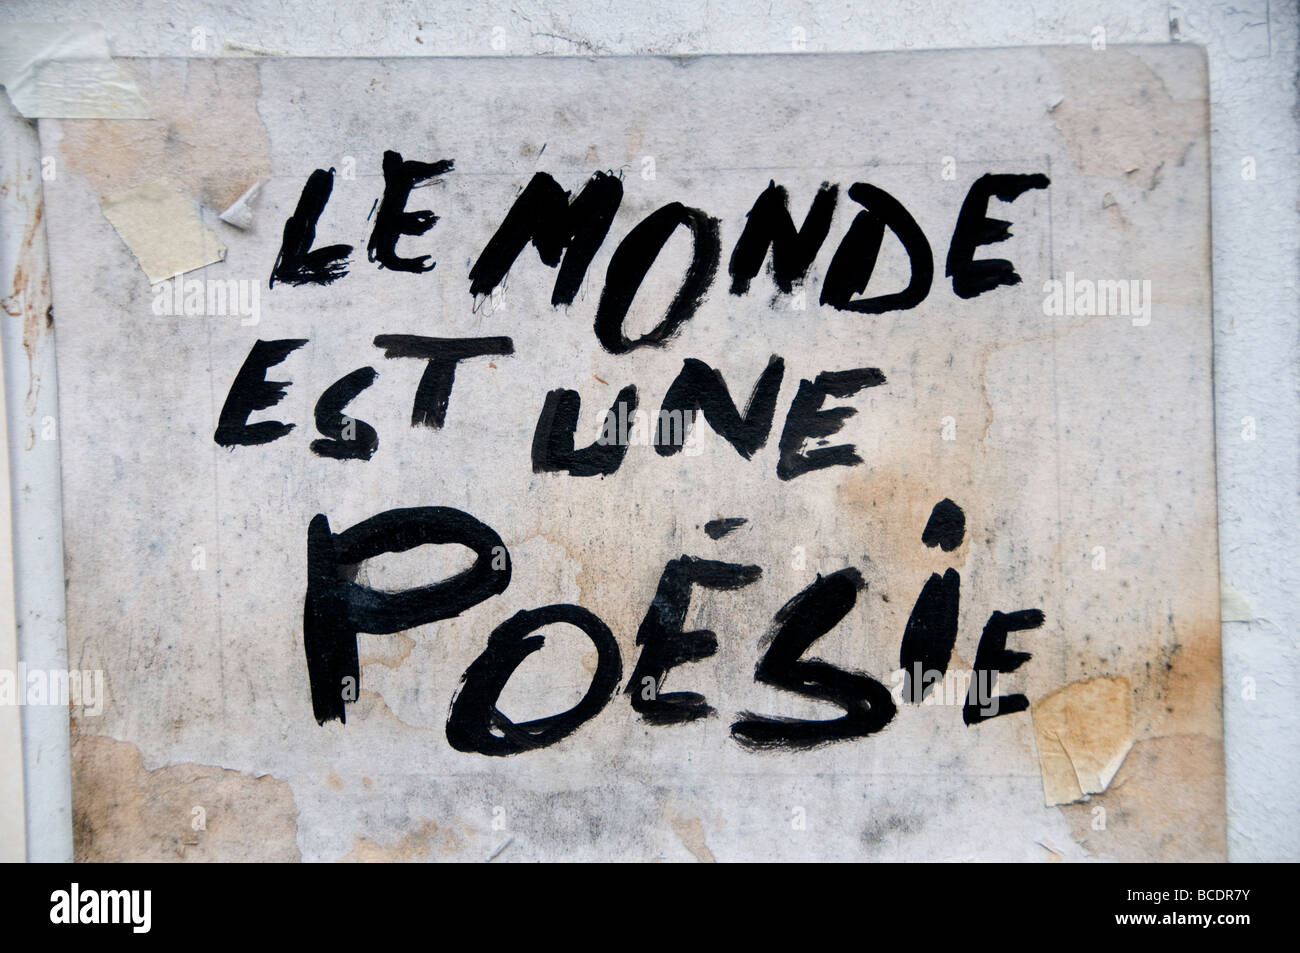 Le Monde et une Poesie The world is a poetry - Stock Image